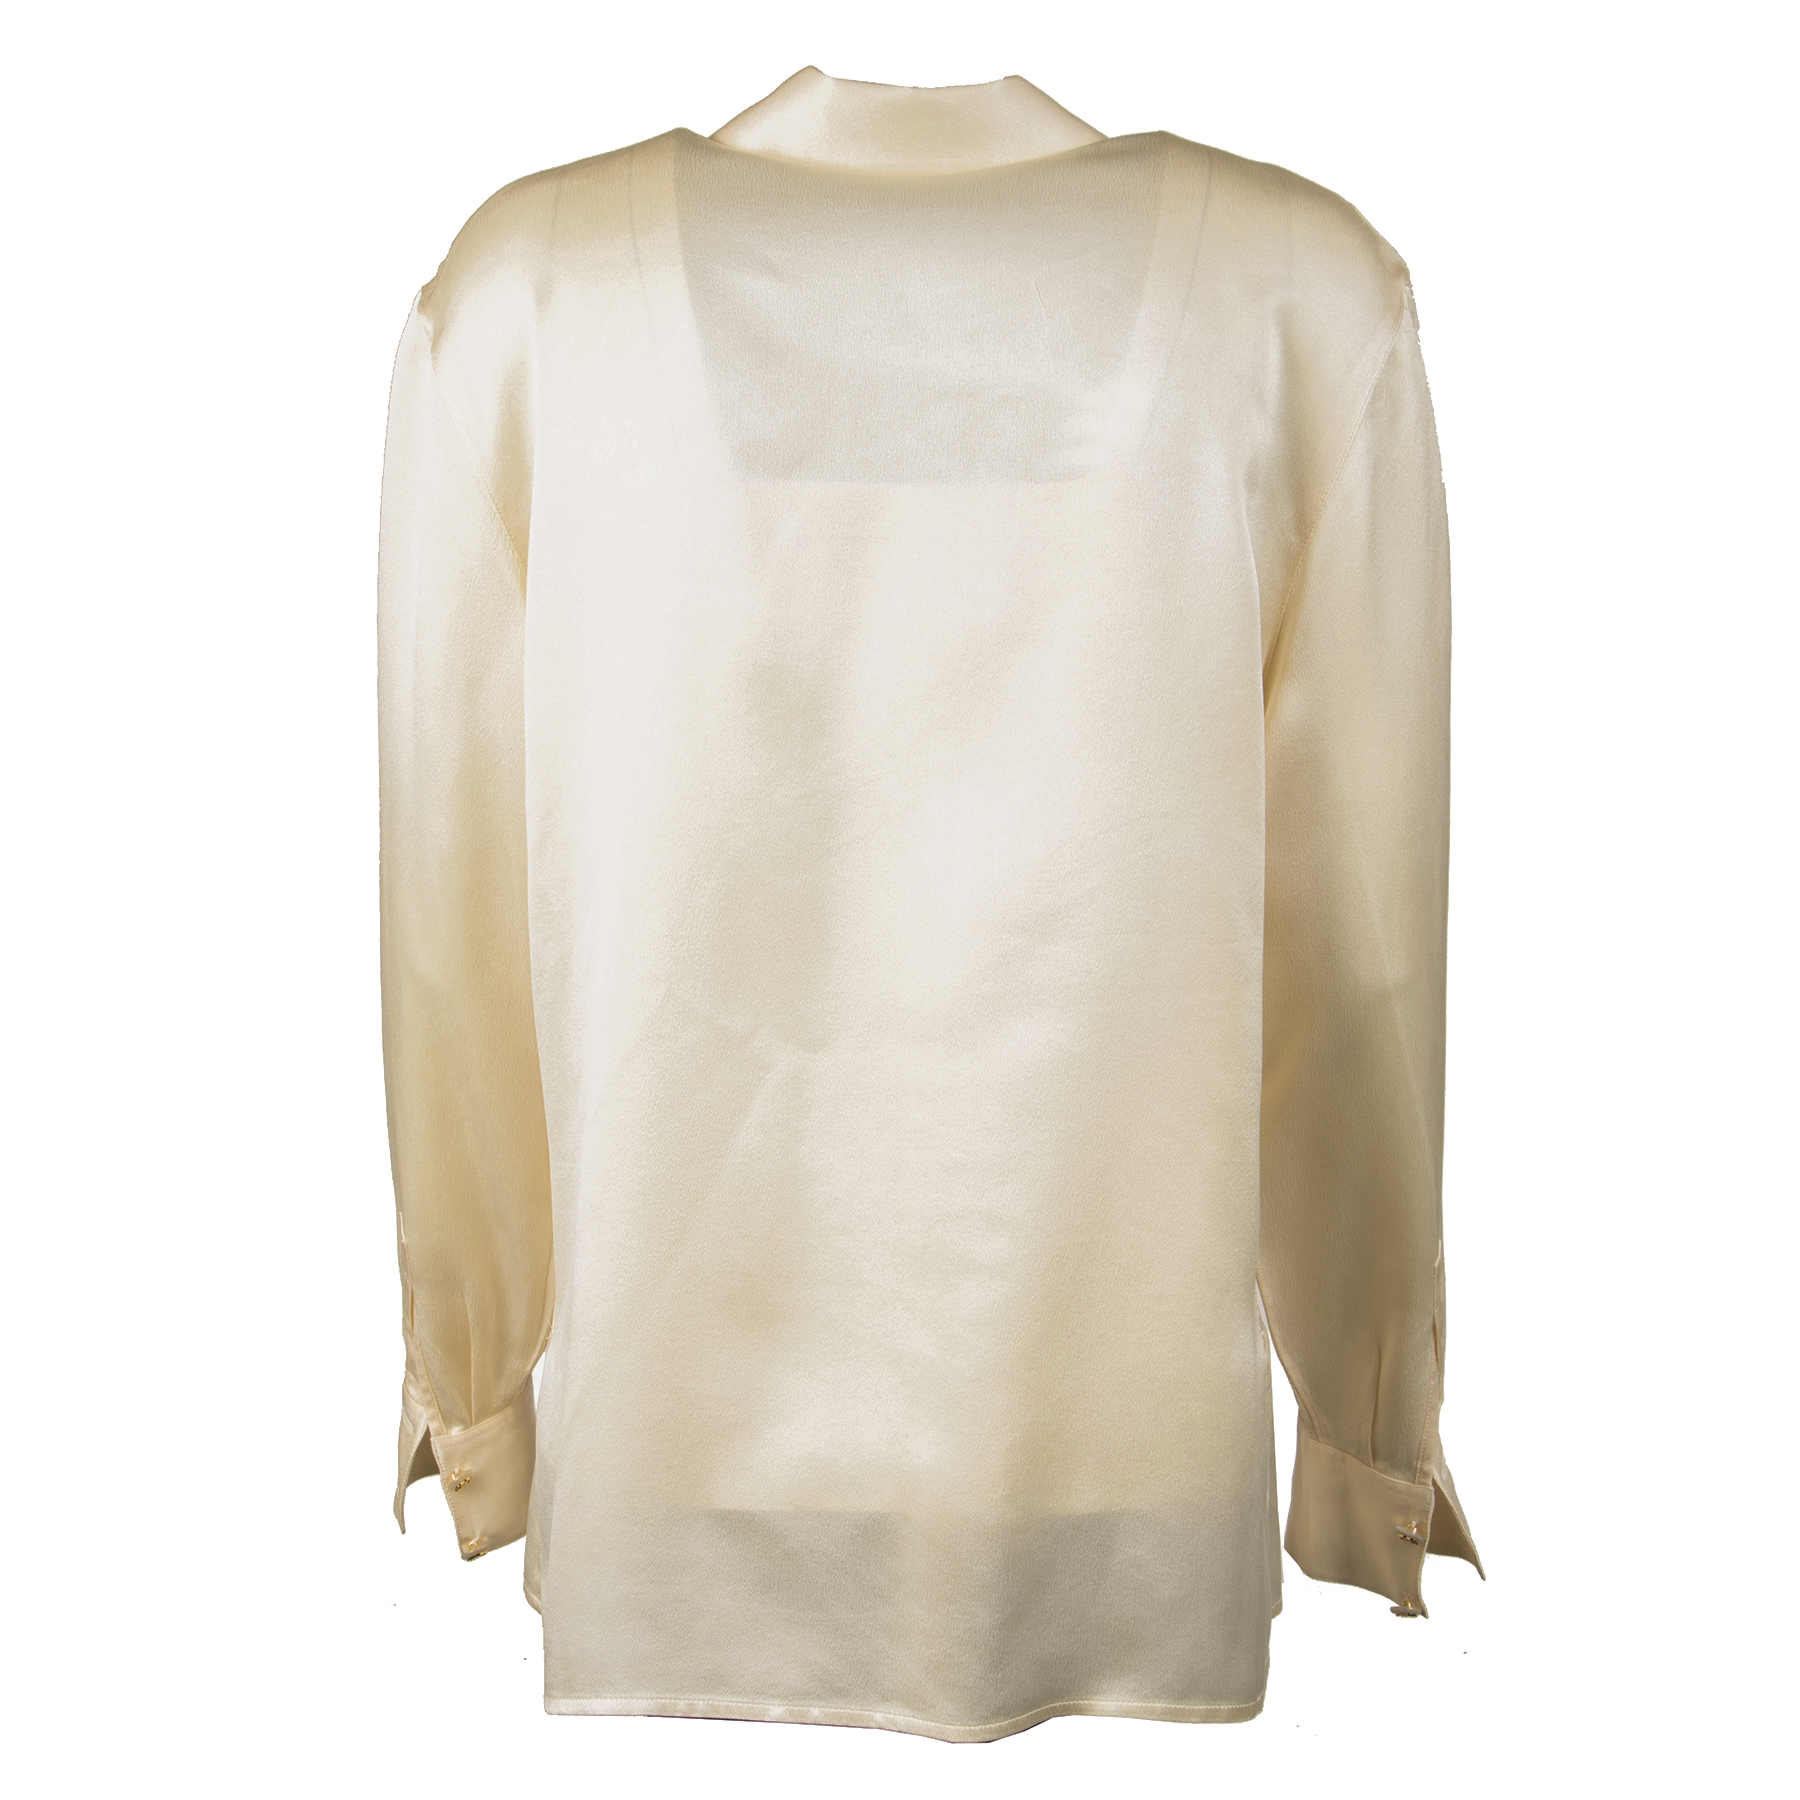 Chanel Cream Silk Blouse